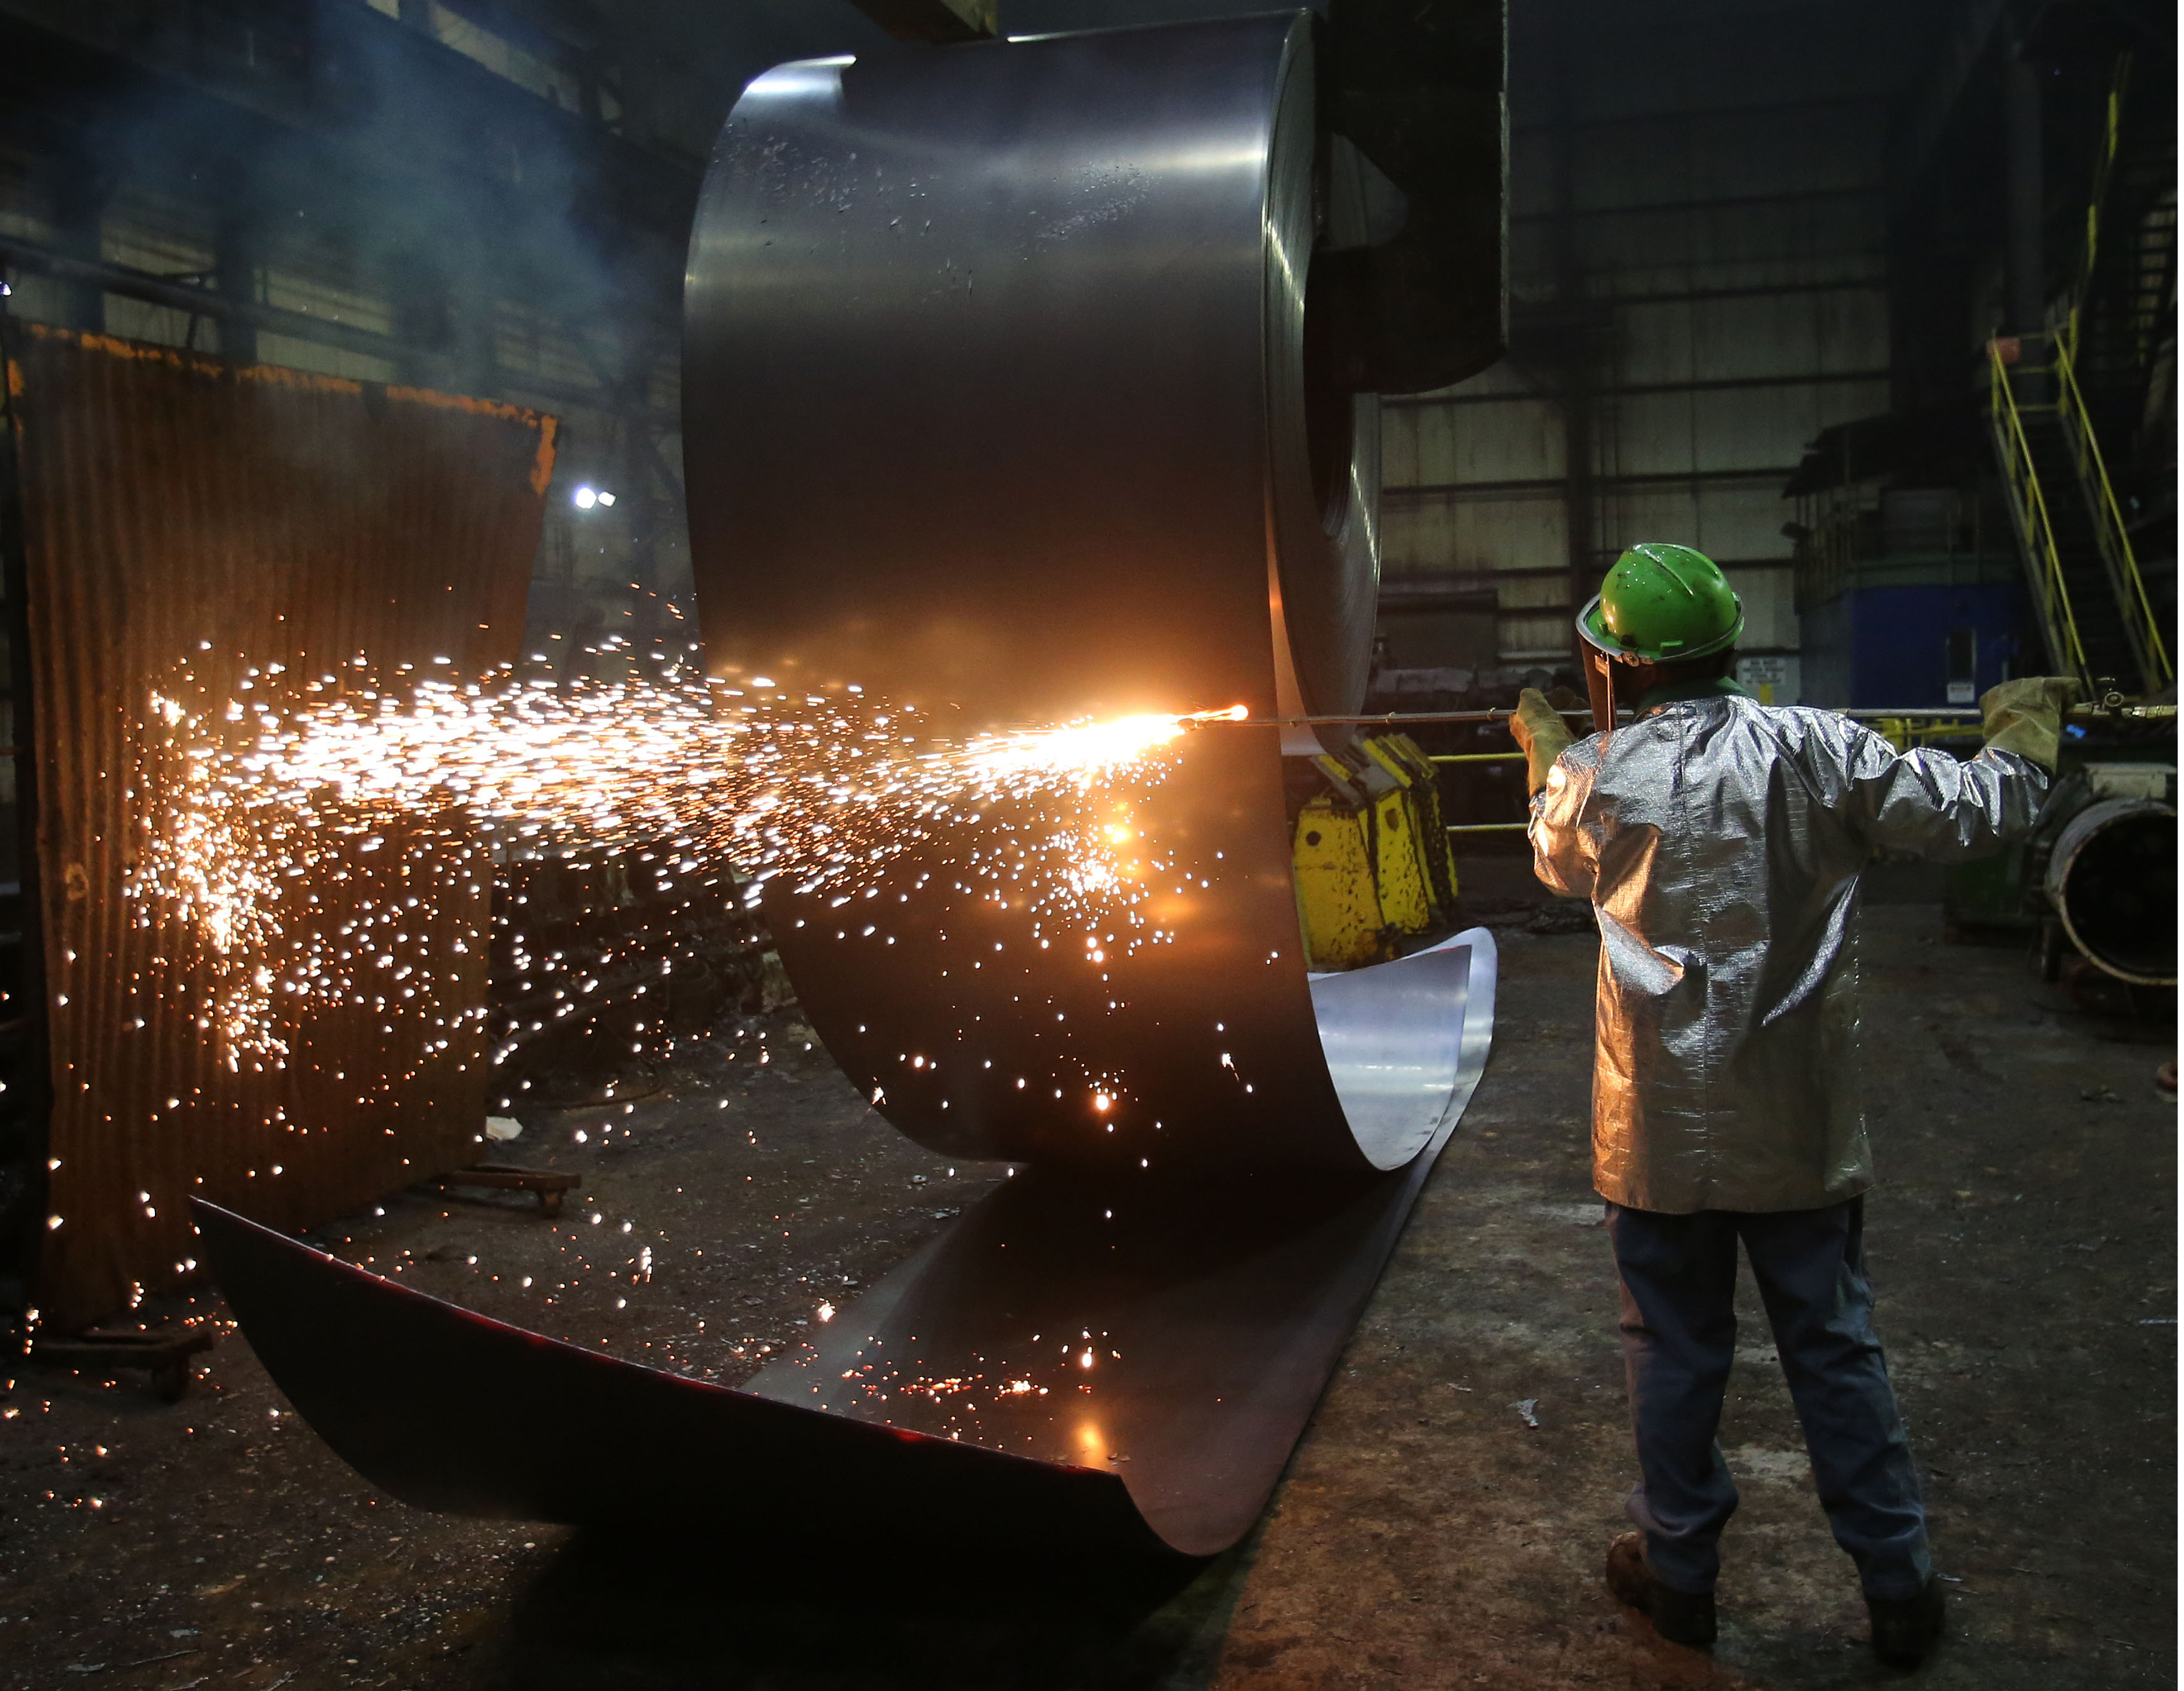 FILE PHOTO: A worker cuts a steel coil at the Novolipetsk Steel PAO steel mill in Farrell, Pennsylvania, U.S., March 9, 2018. REUTERS/Aaron Josefczyk